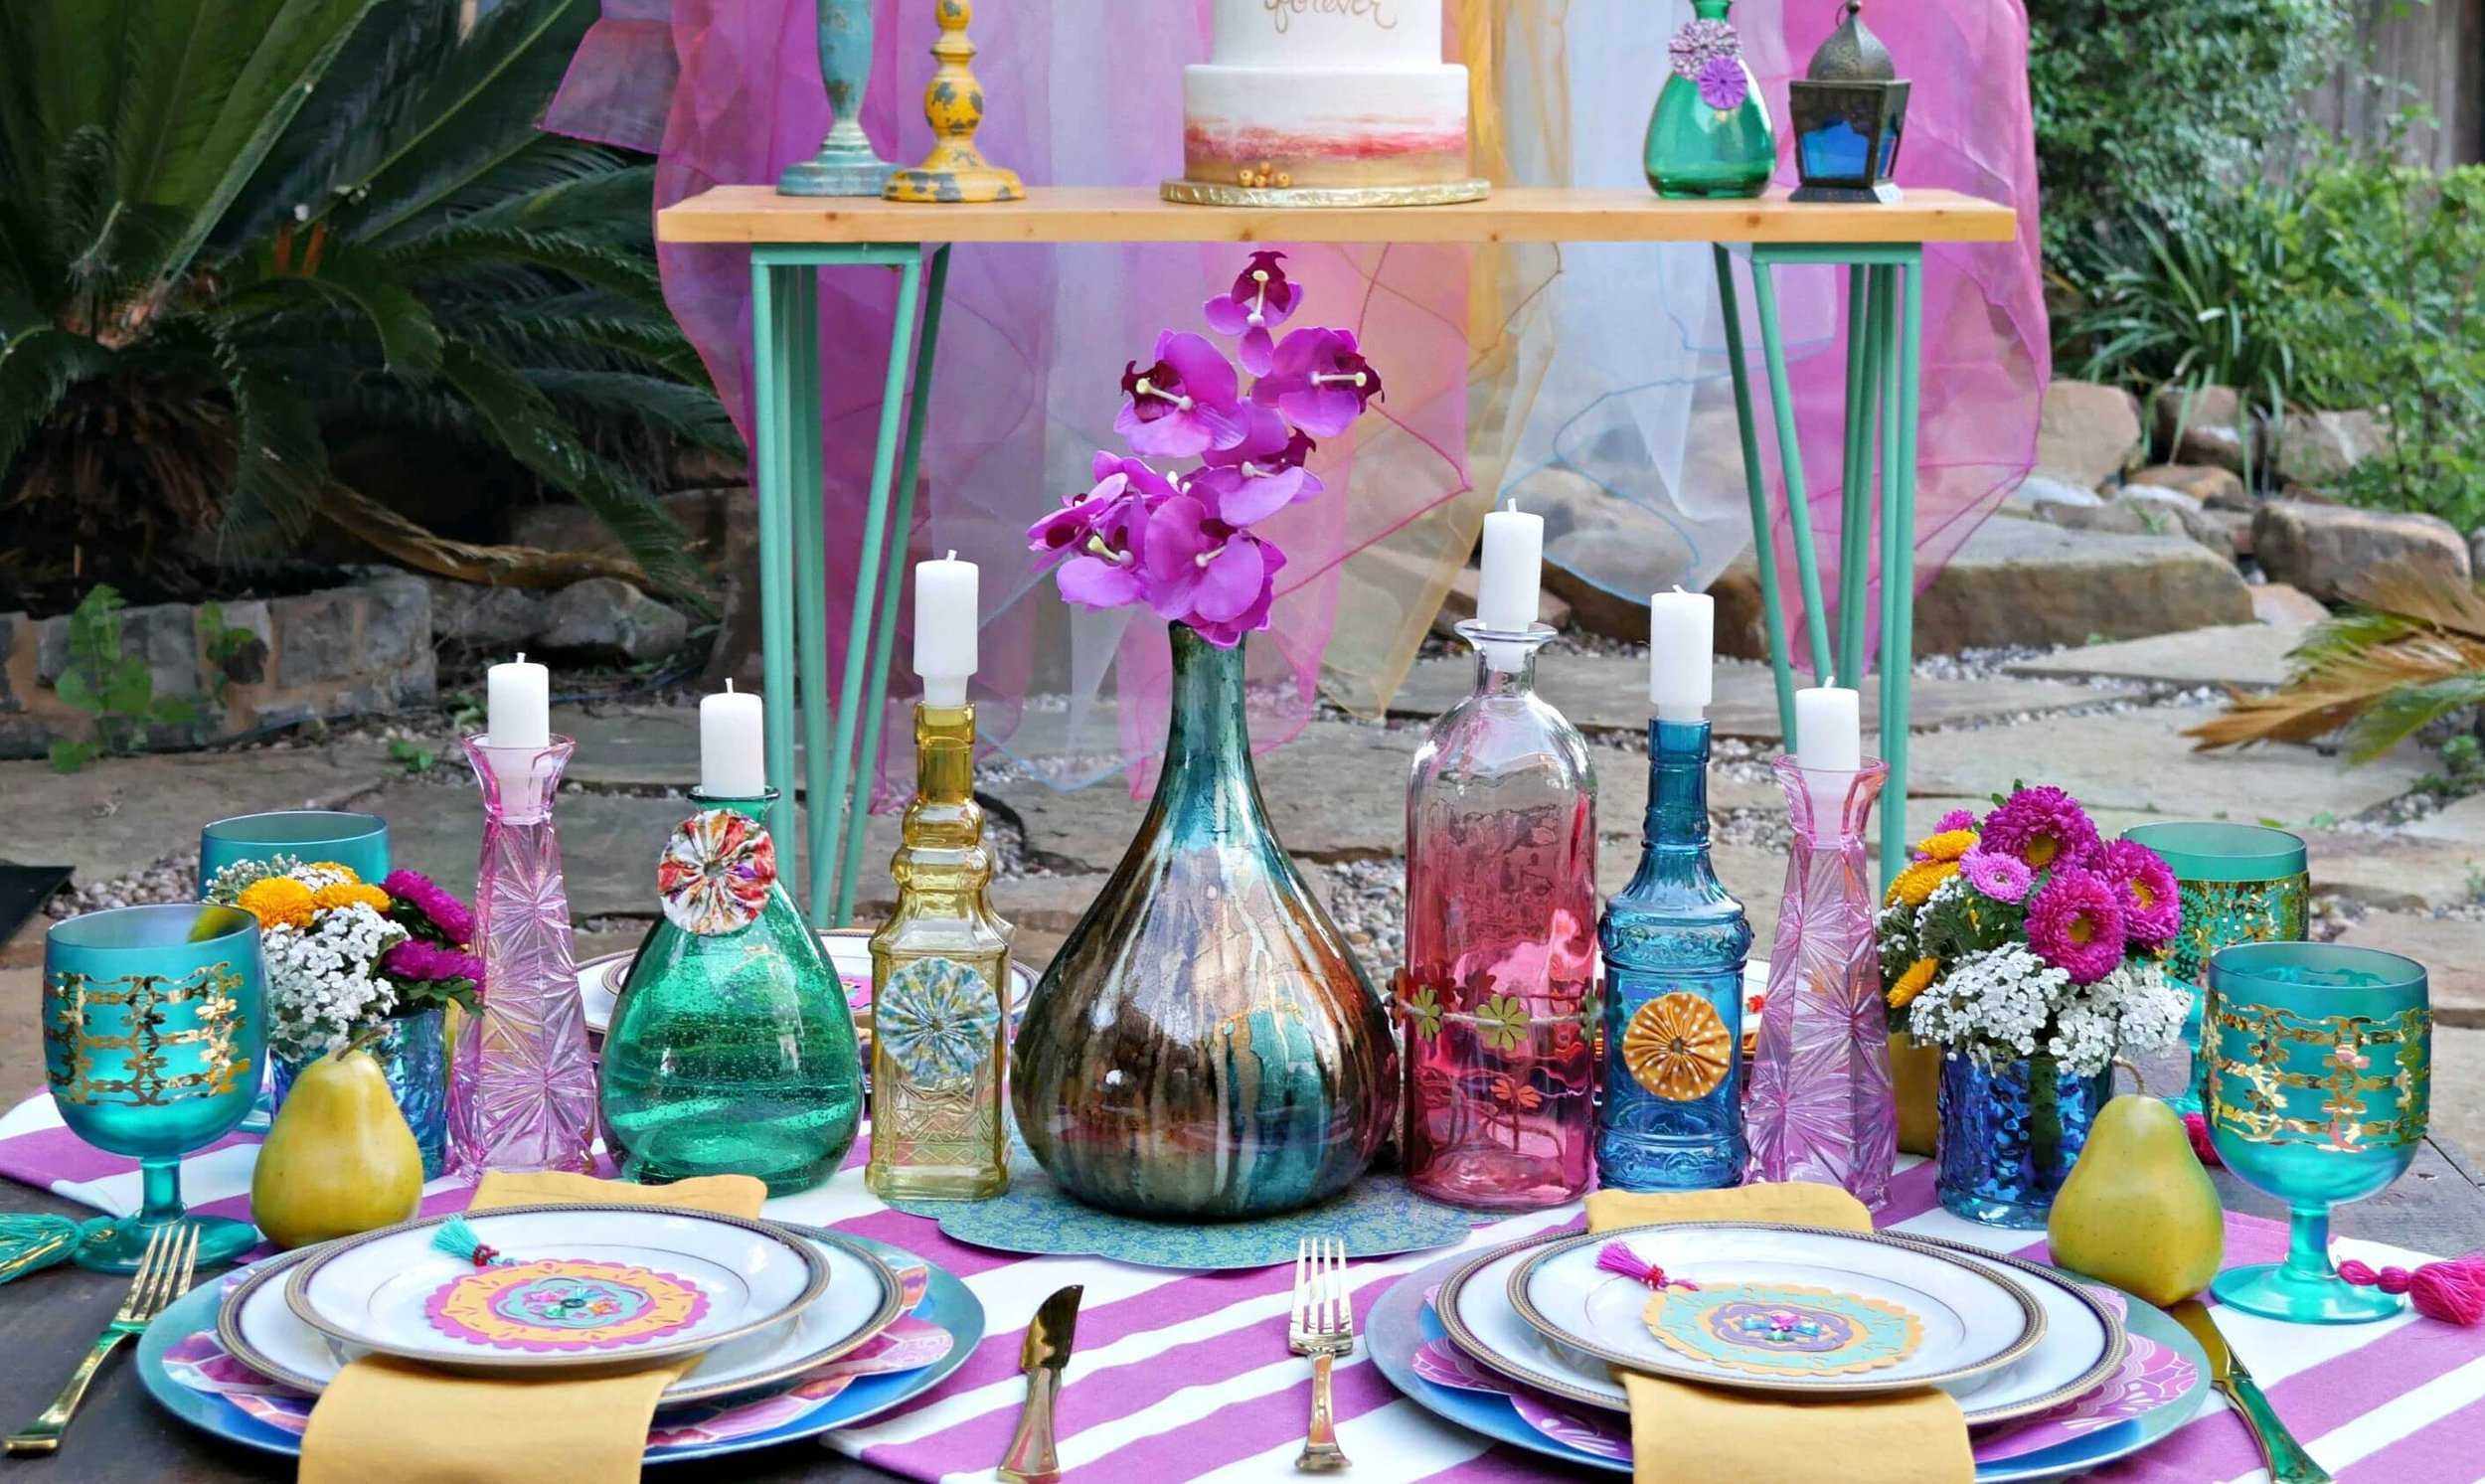 This jewel toned party is bold, beautiful and full of color. Dress up your next celebration with a boho chic vibe and include lots of colorful vases and pretty patterns. Created by Mint Event Design www.minteventdesign.com #tablesetting #tablescapes #bohochic #engagementparty #cricutdiy